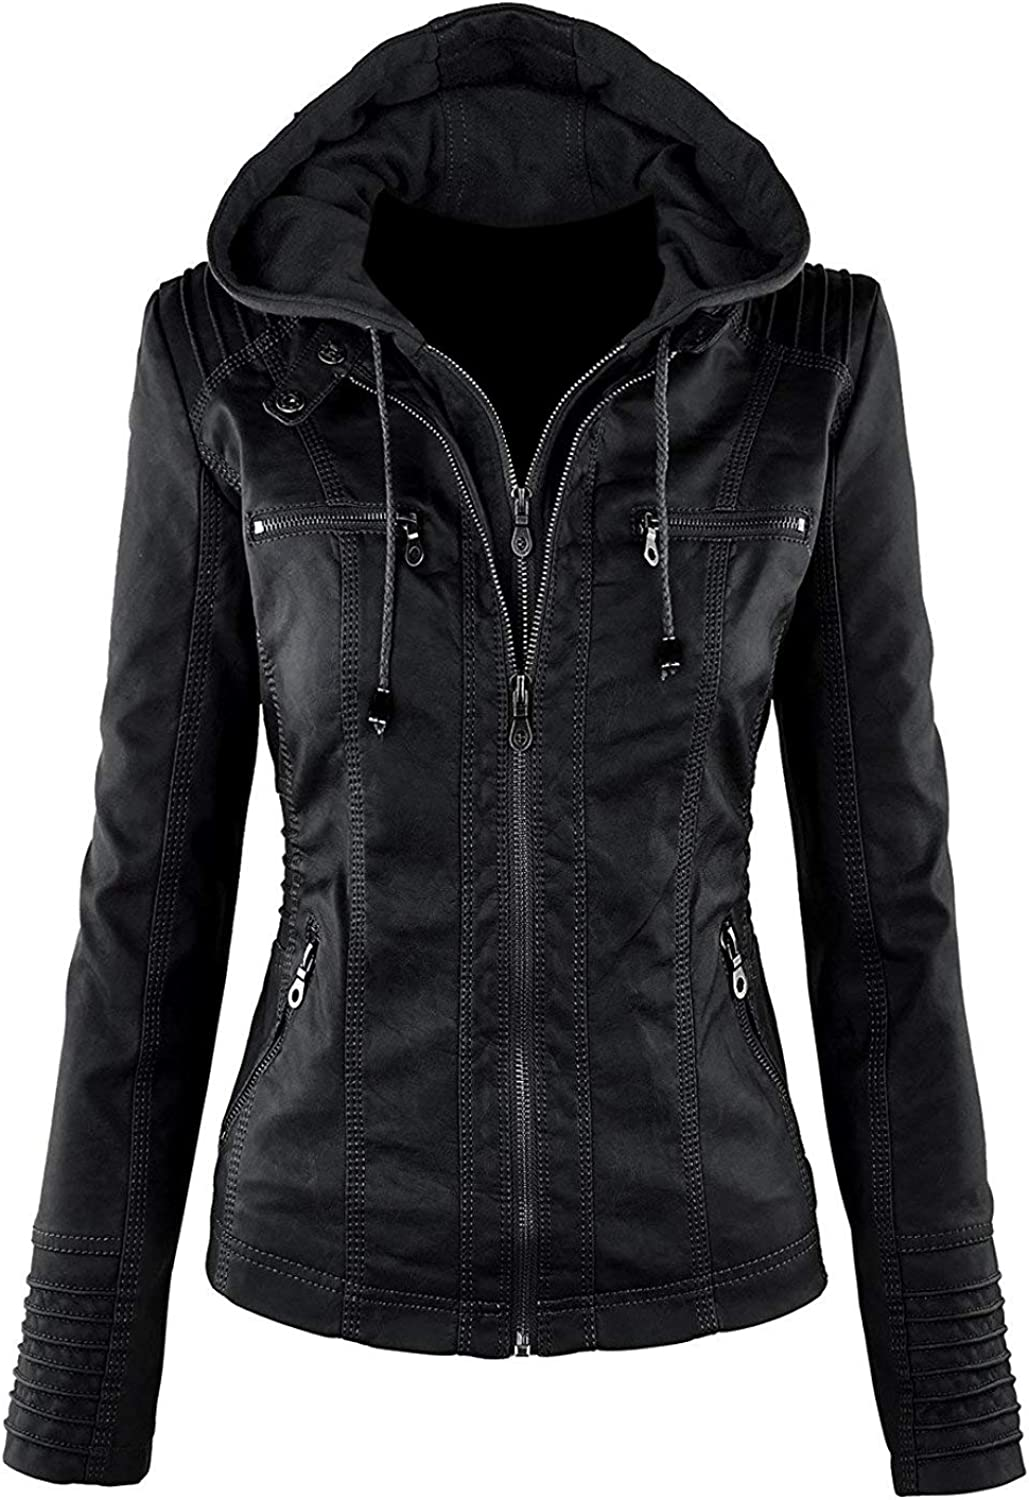 TheSmartSales Latest item Black Hooded High quality new Faux Custom for Jacket W Made Leather